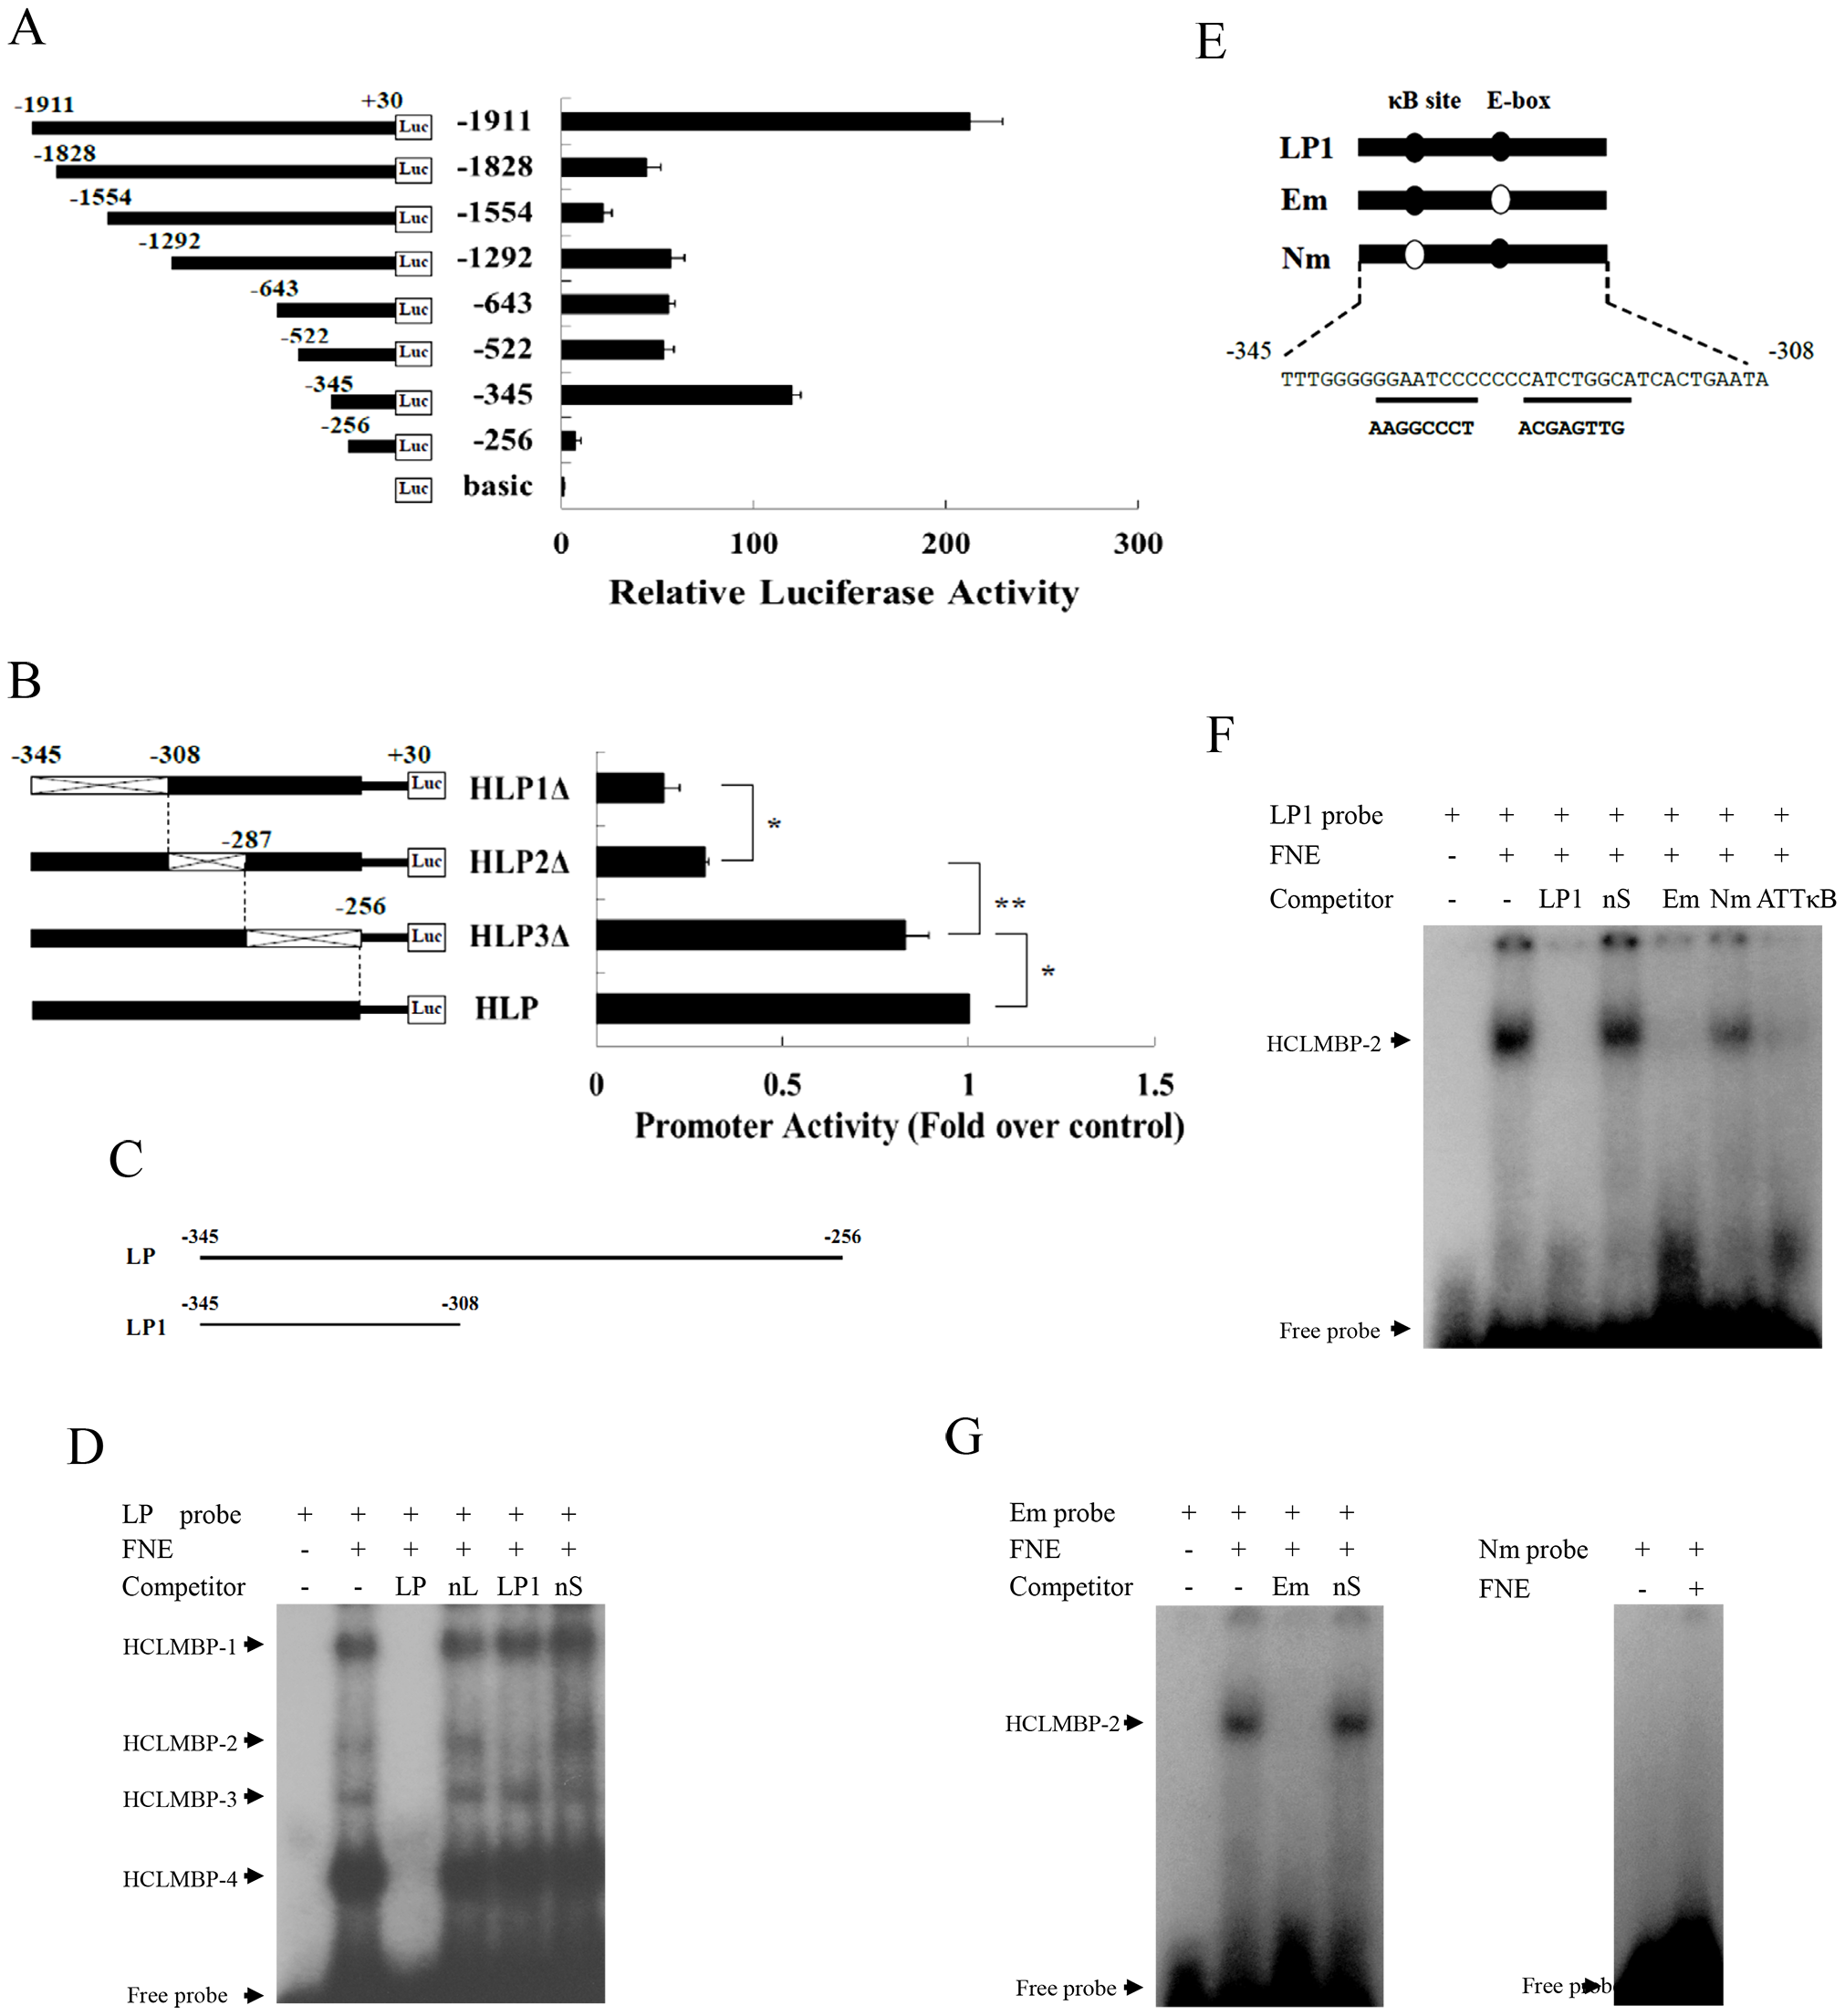 Identification of a transcription factor, HCLMBP-2, which may be a member of the NF-κB protein family.